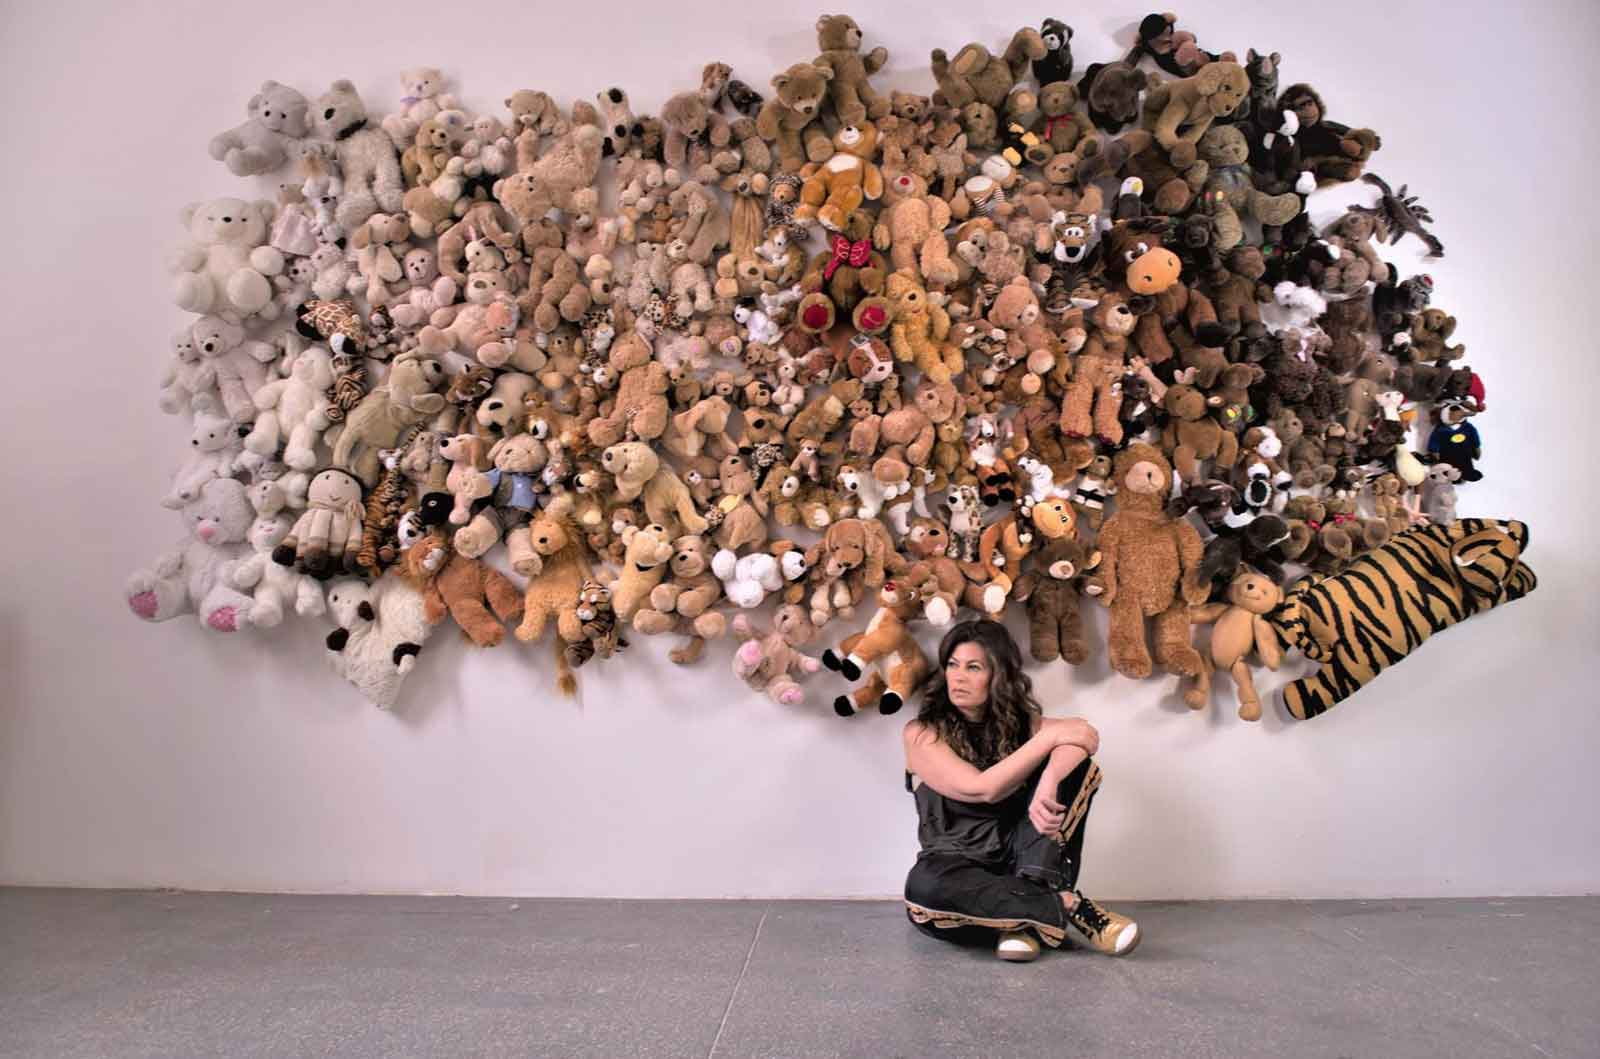 Ivy Nate in front of wall of stuffed animals